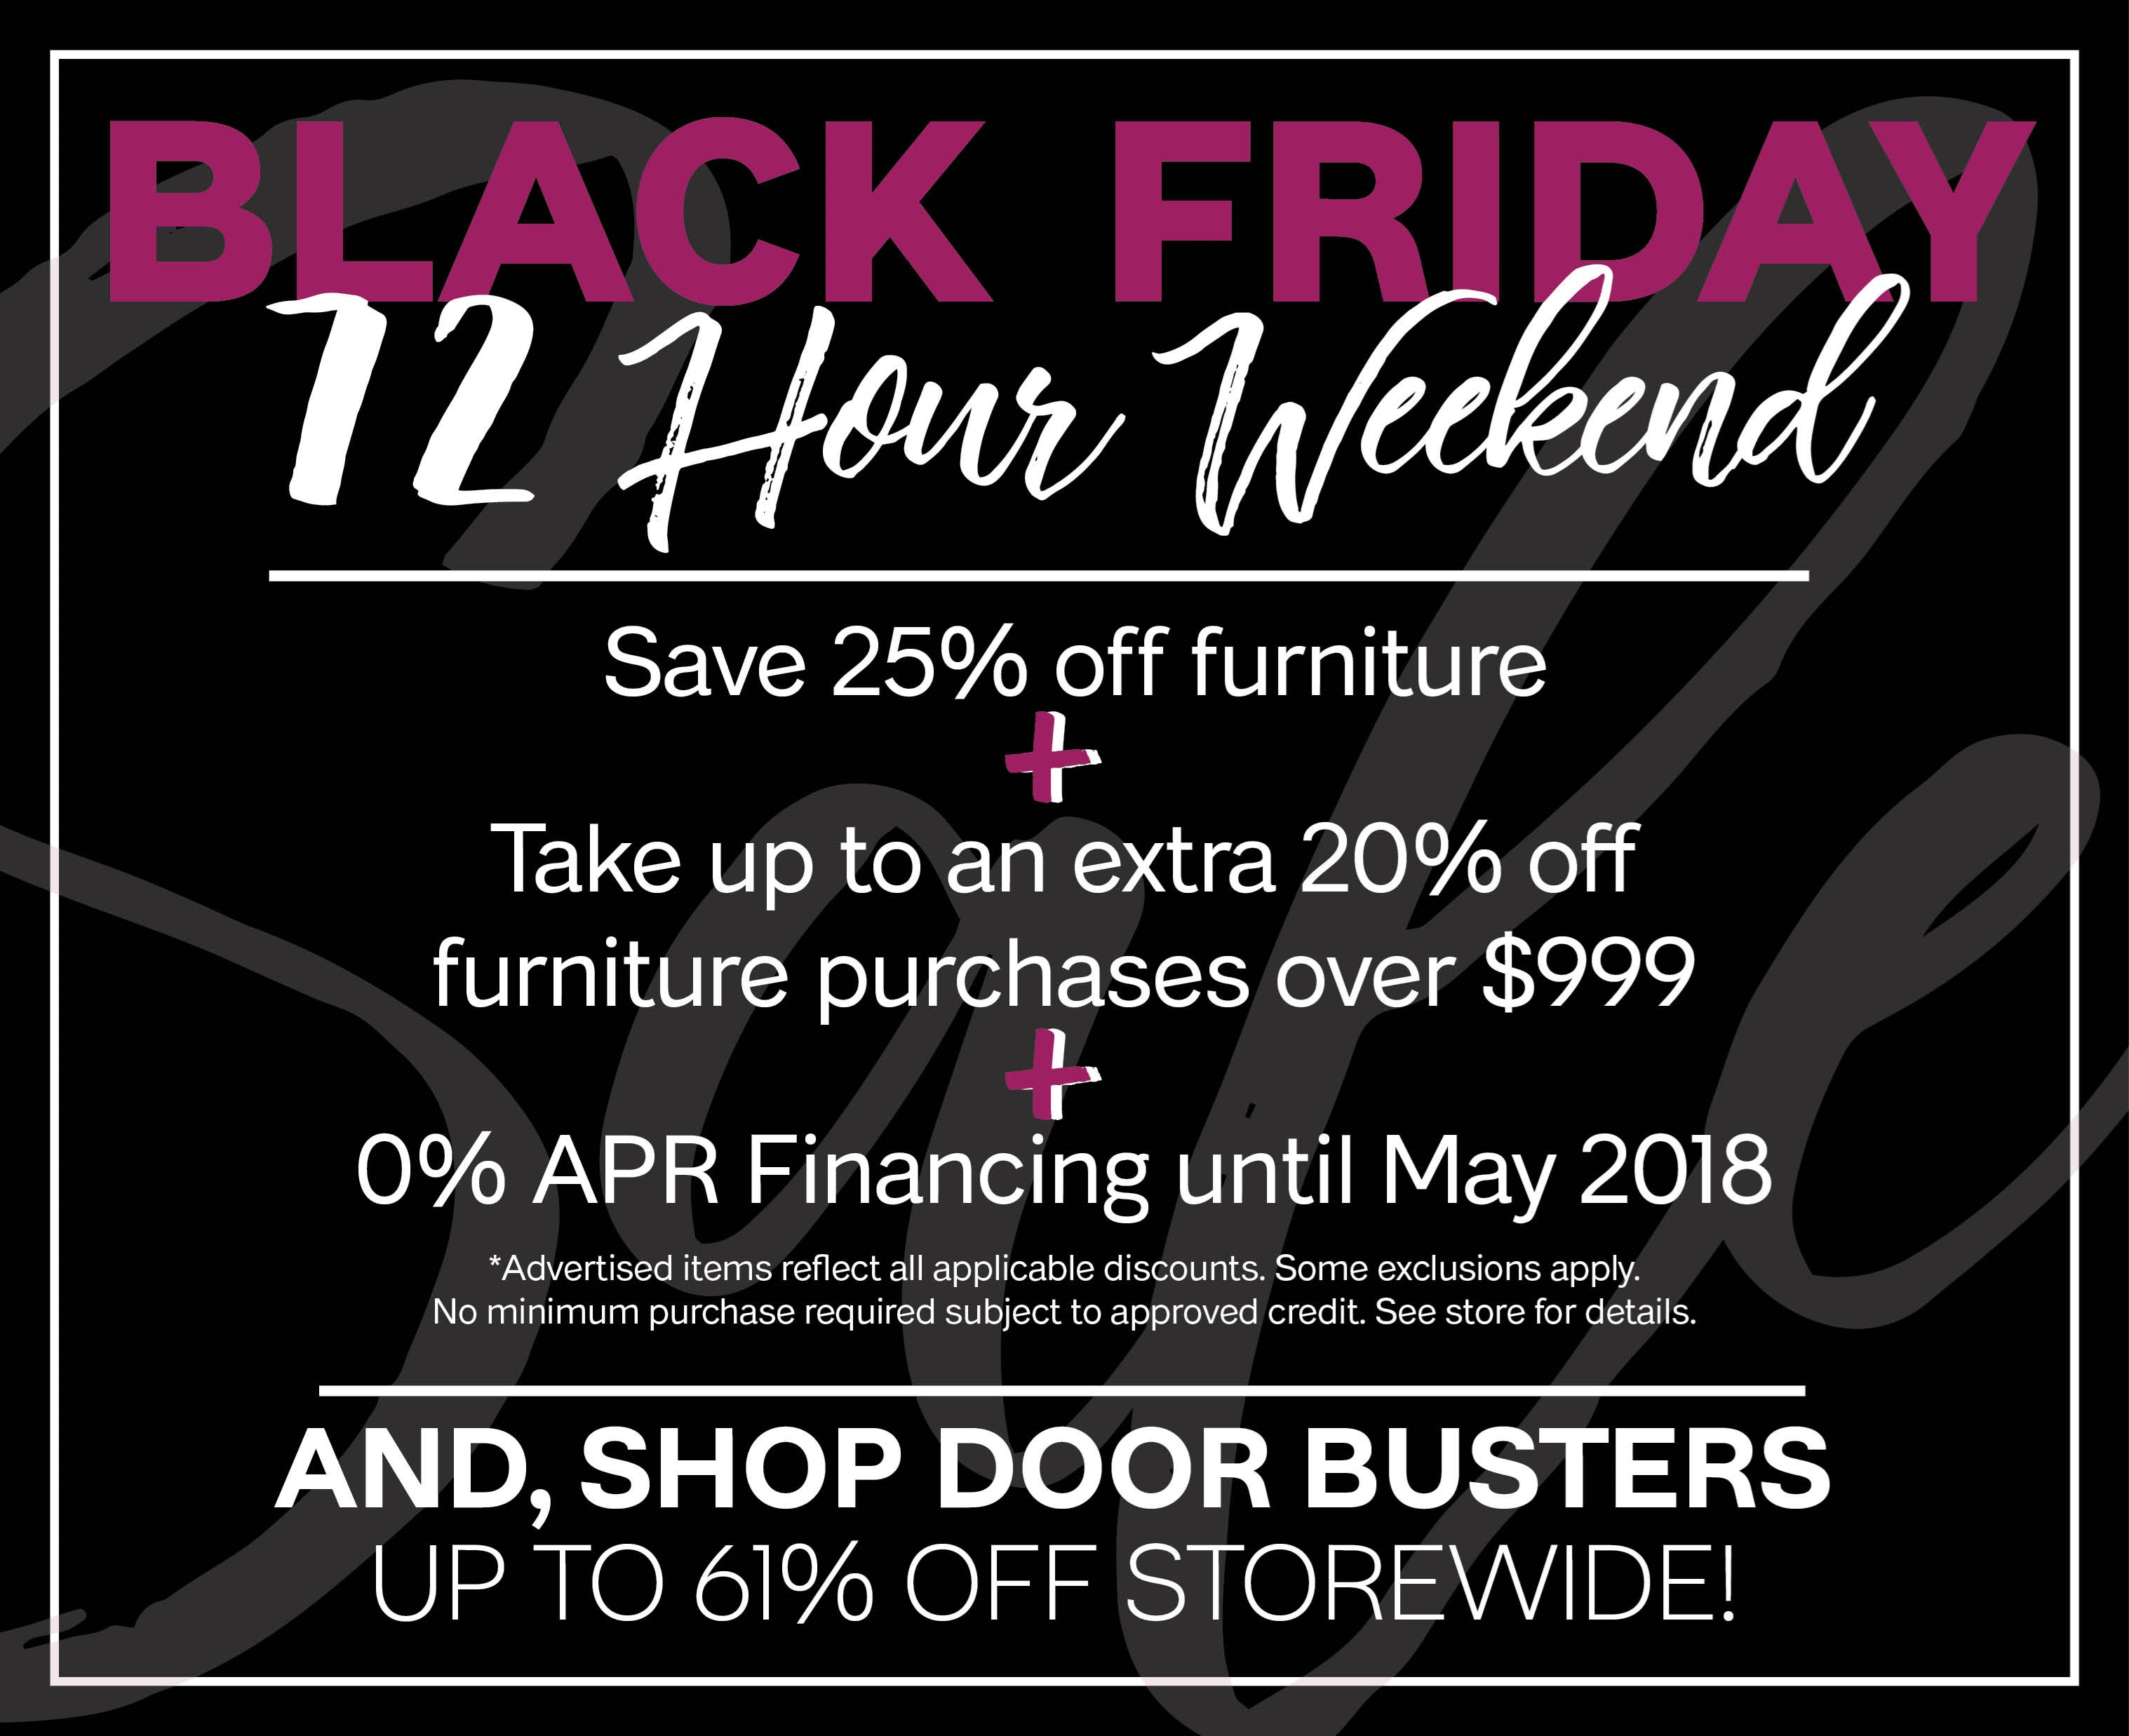 Furniture & ApplianceMart Black Friday 72 Hour Weekend